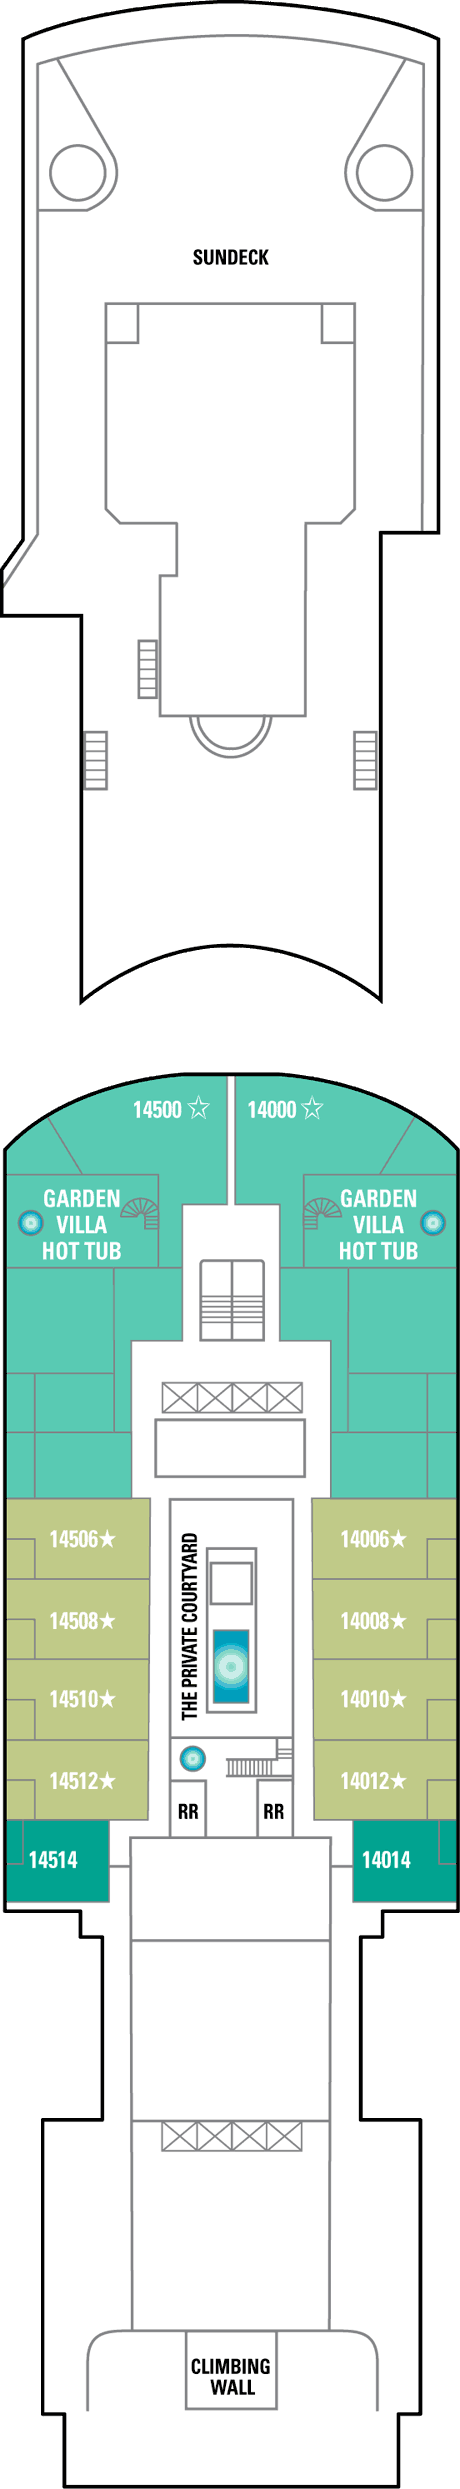 Norwegian Pearl Deck 14 layout